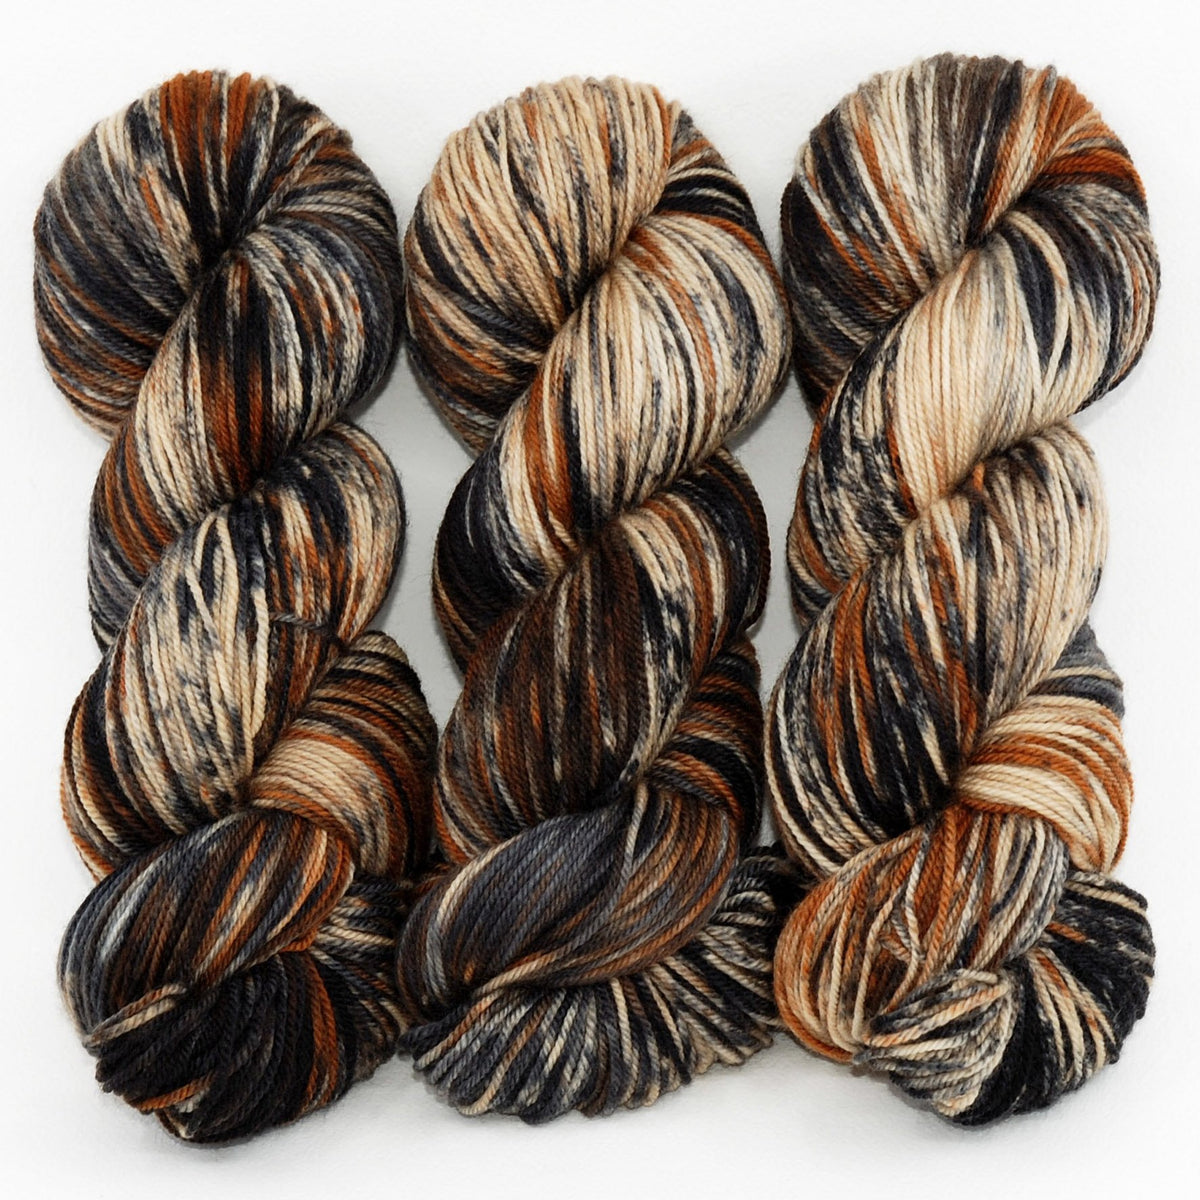 Brindle Dog - Revival Fingering - Dyed Stock